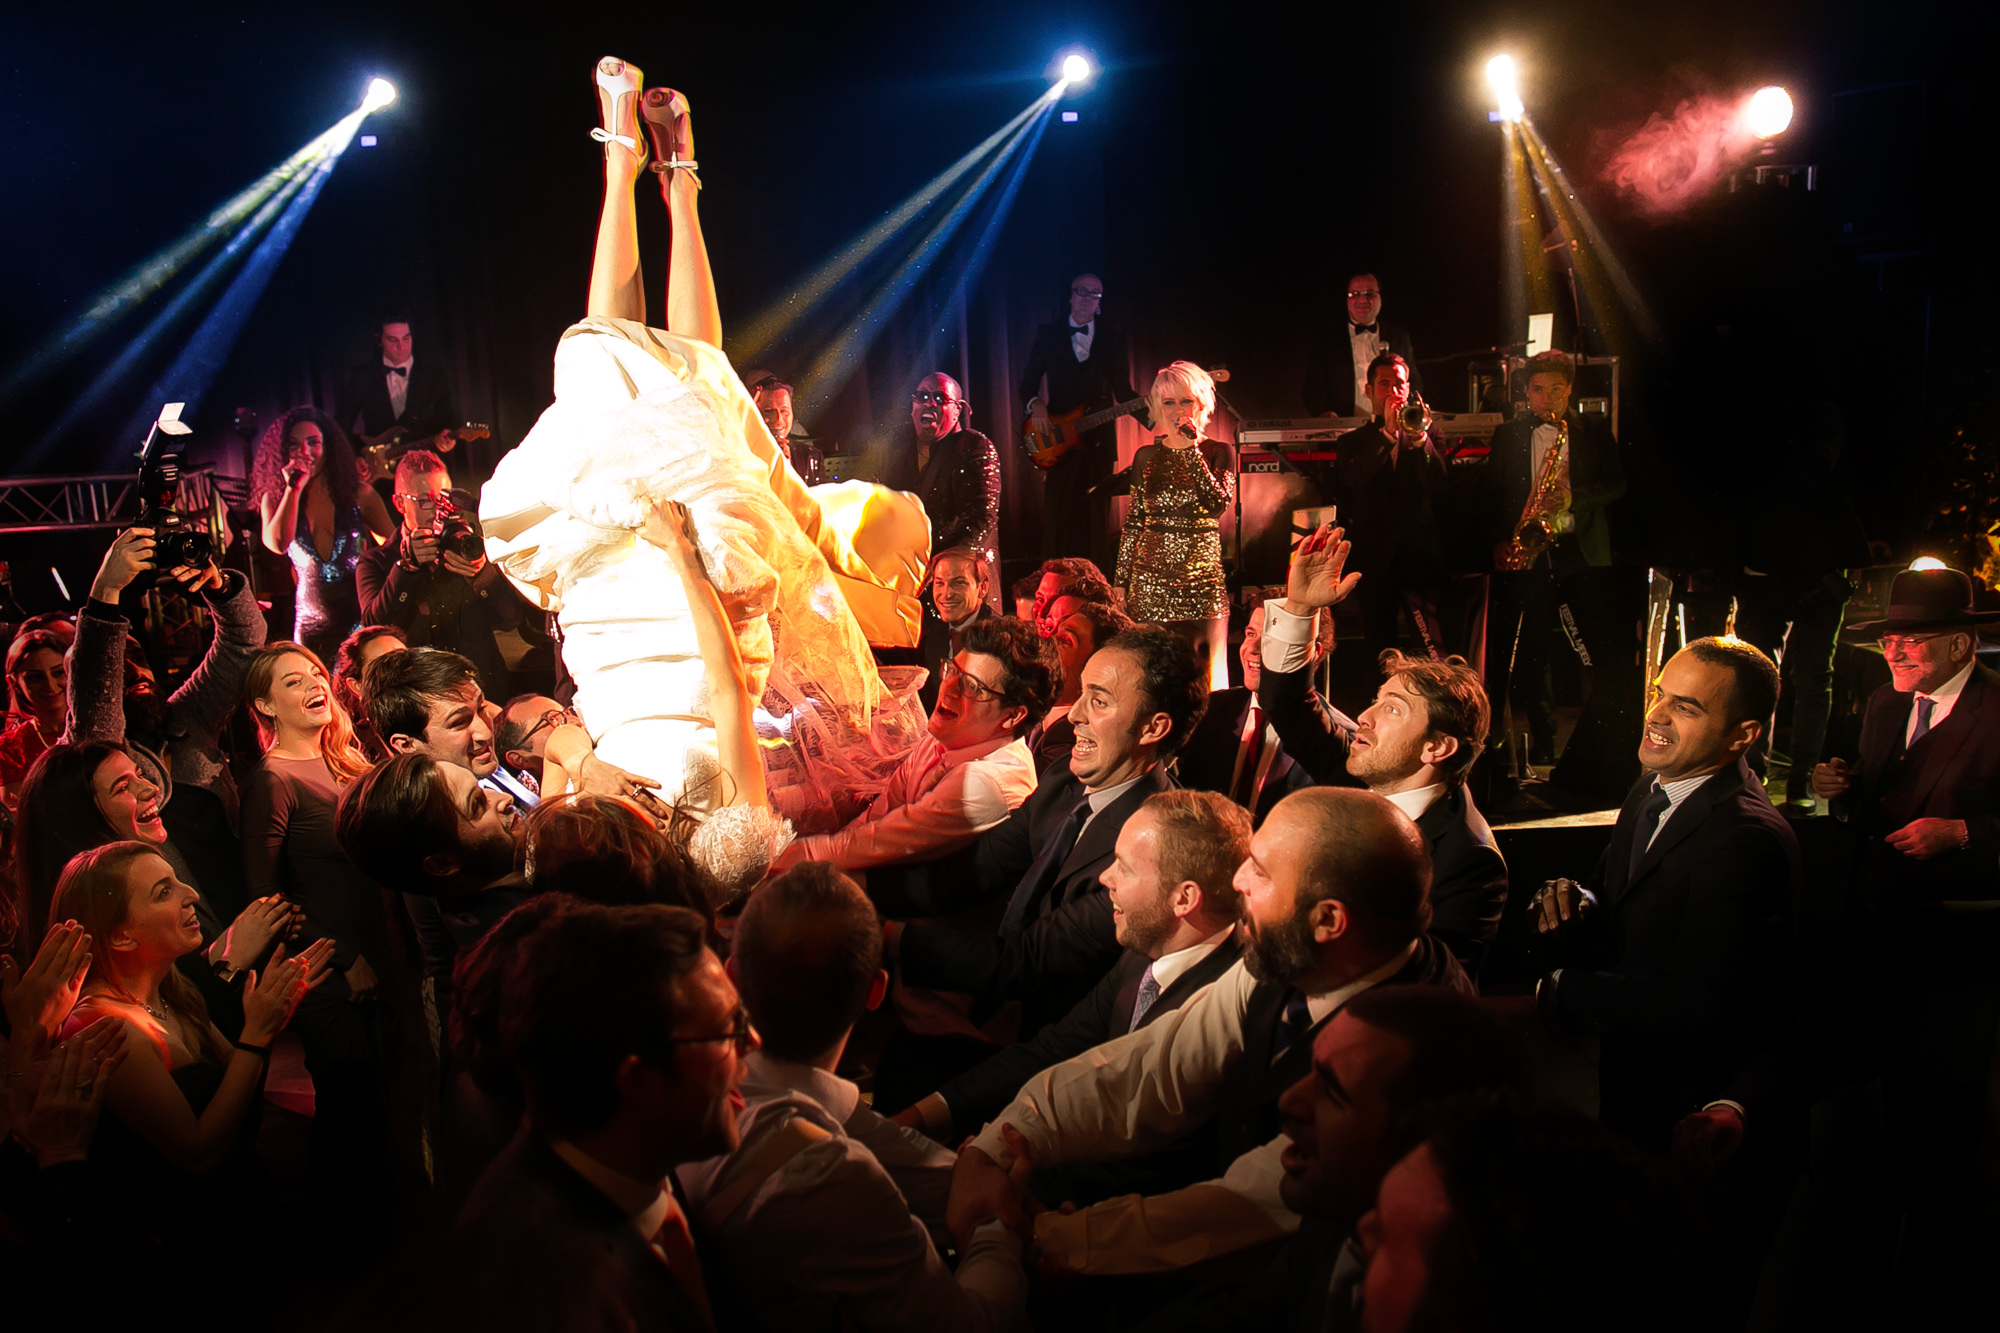 Funny photo of bride upside down on dance floor by David Bastianoni